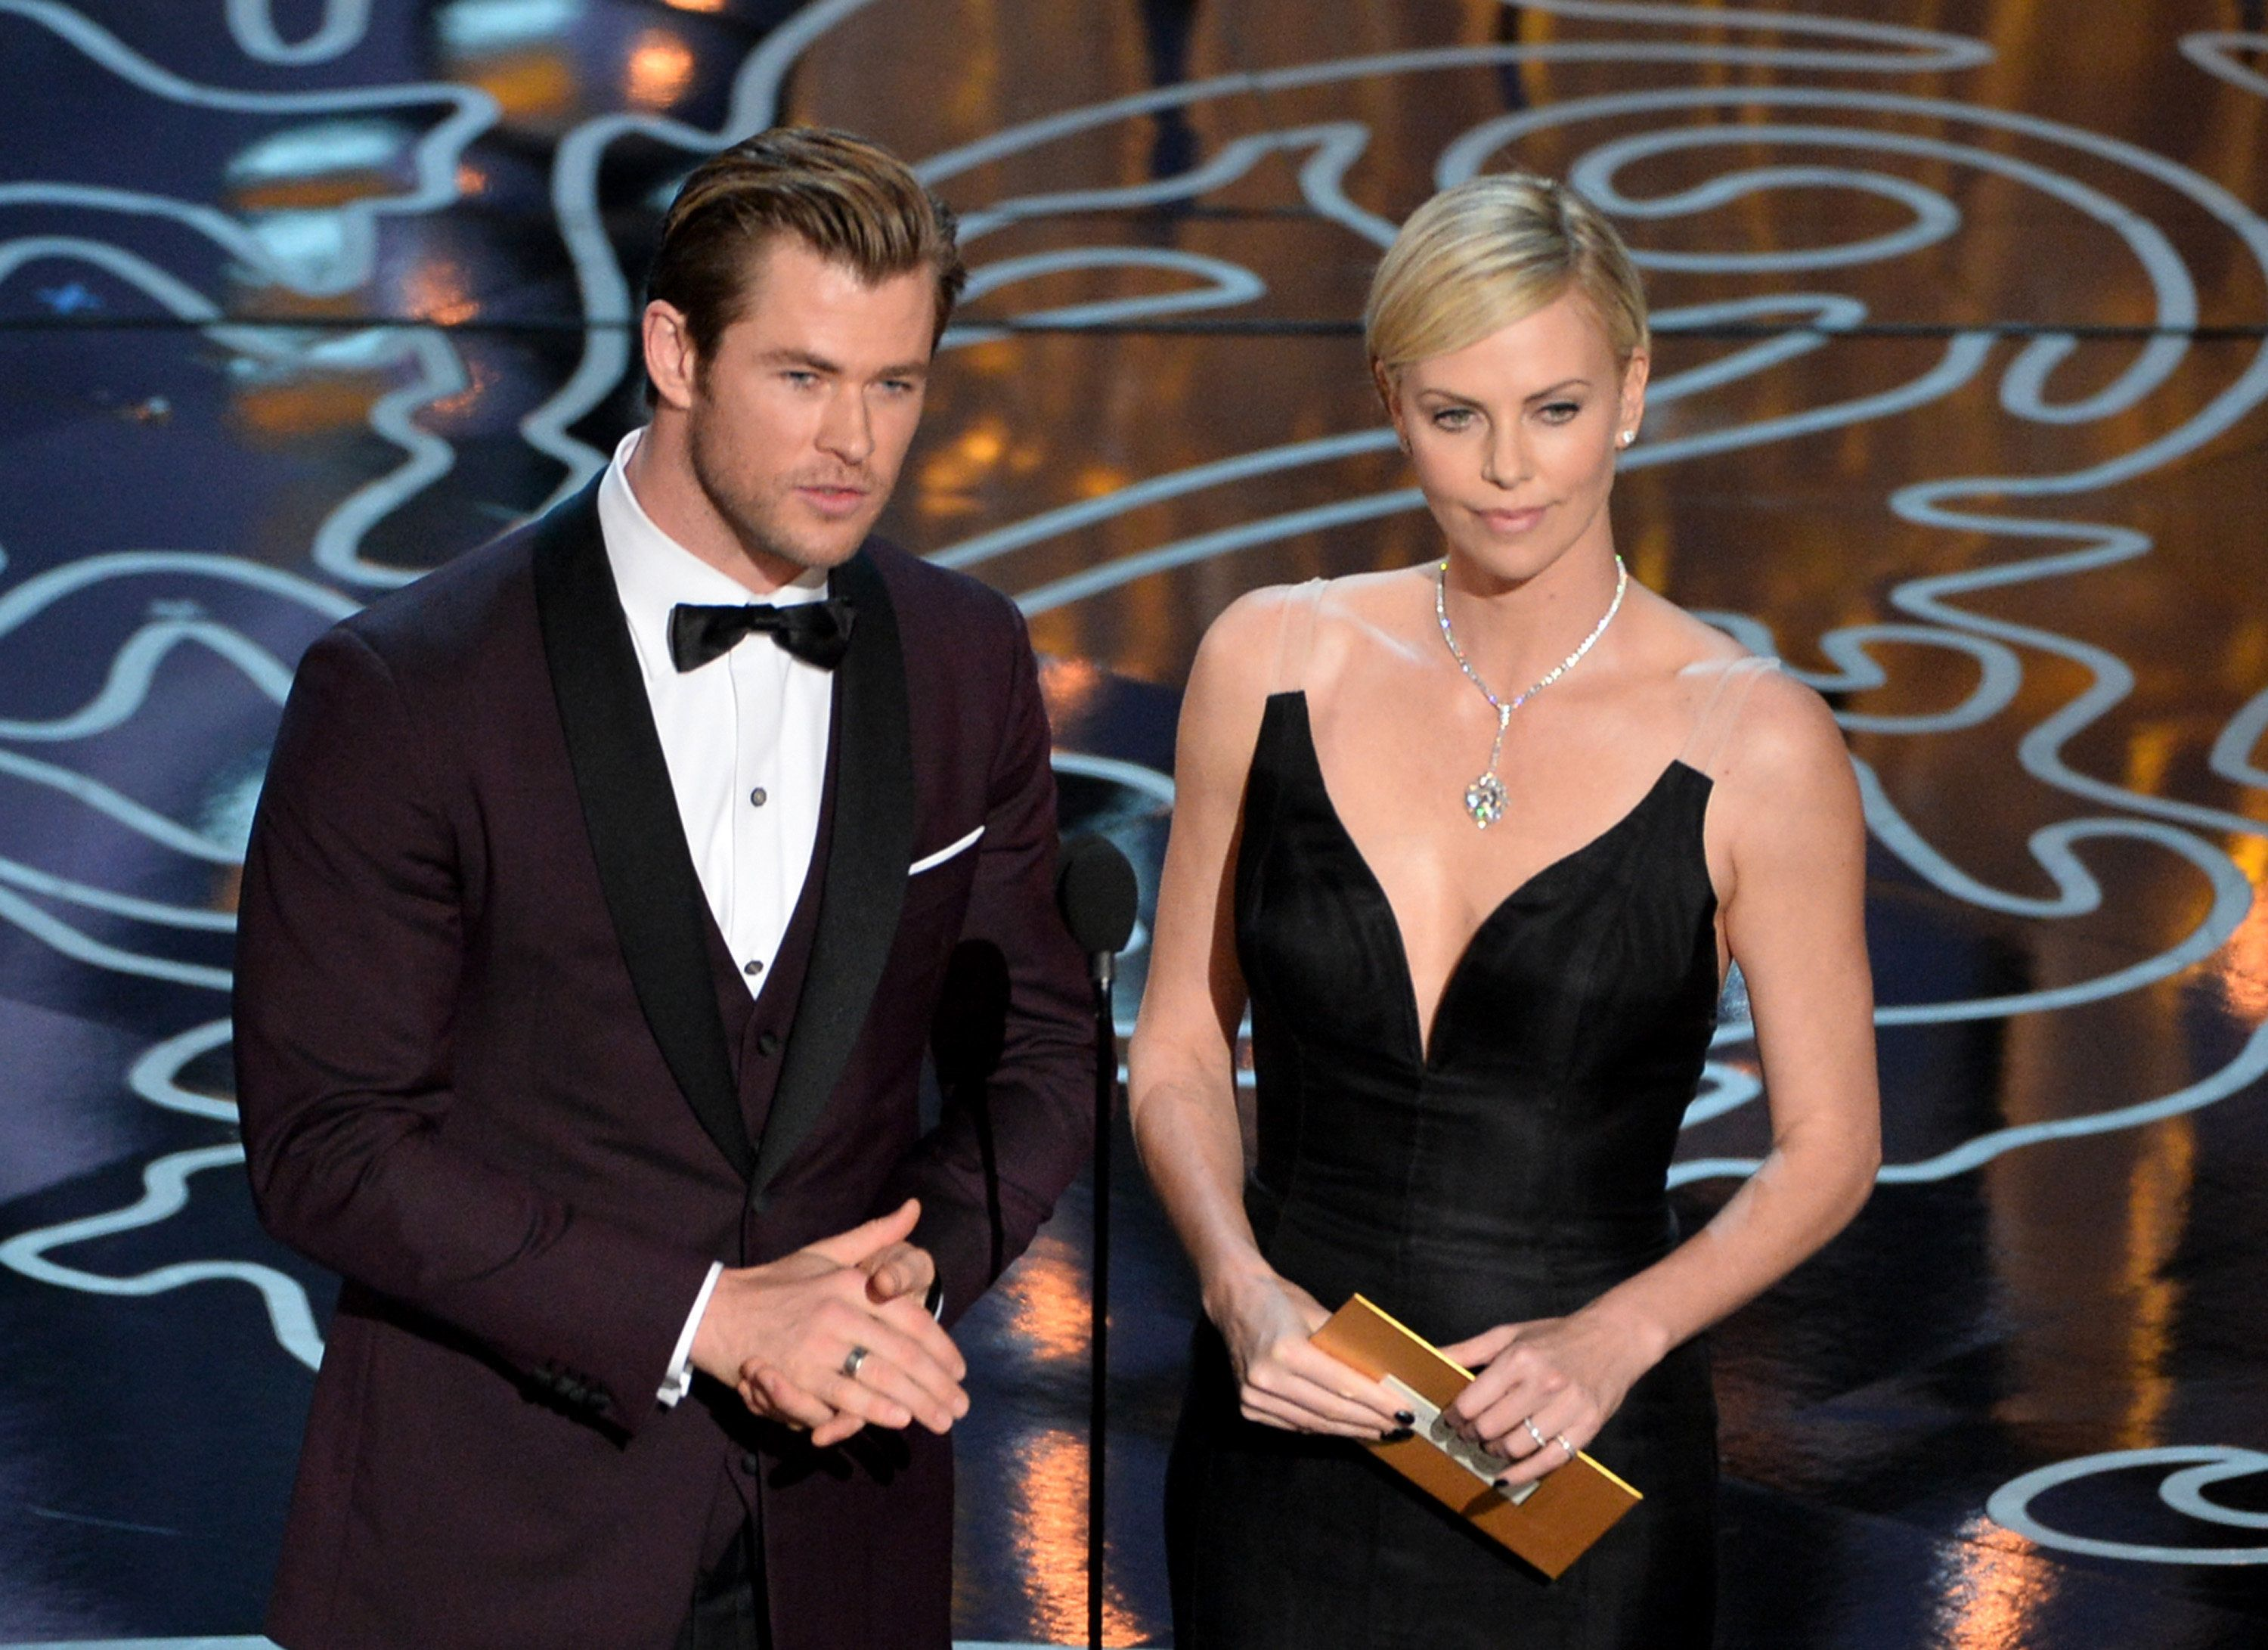 HOLLYWOOD, CA - MARCH 02:  Actors Chris Hemsworth (L) and Charlize Theron speak onstage during the Oscars at the Dolby Theatre on March 2, 2014 in Hollywood, California.  (Photo by Kevin Winter/Getty Images)